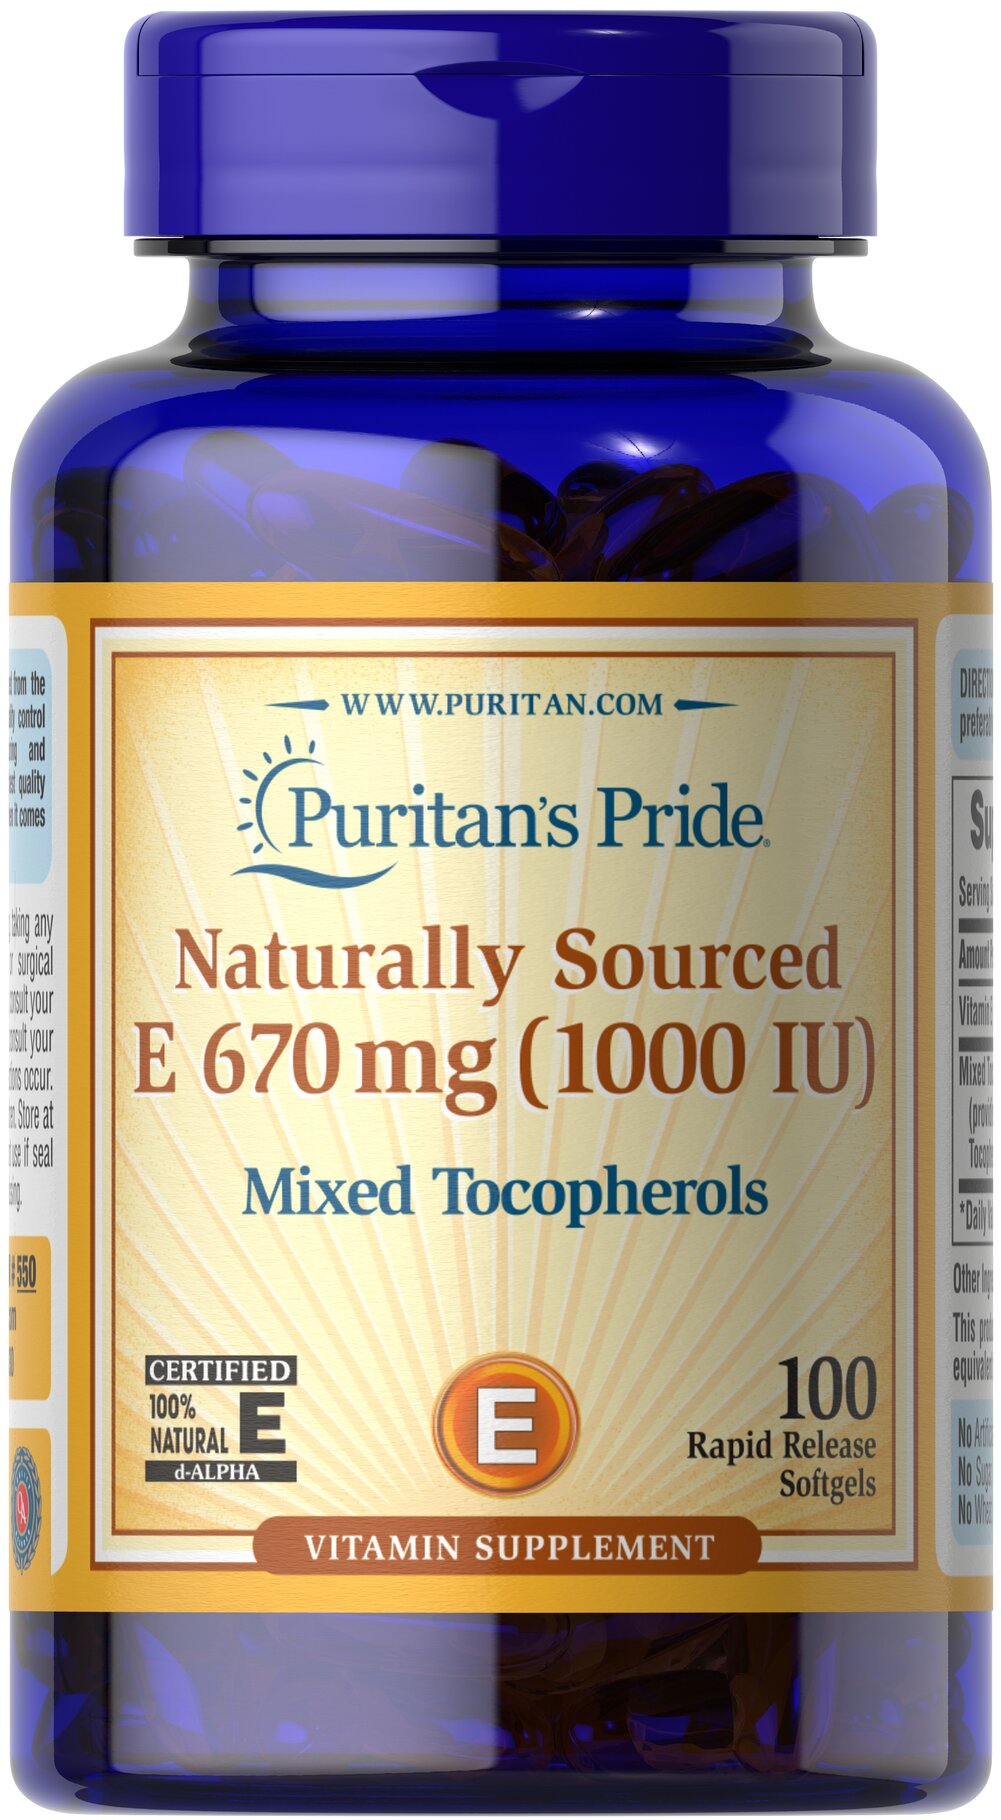 Vitamin E-1000 IU Mixed Tocopherols Natural <p><strong>Vitamin E</strong> promotes immune function and helps support cardiovascular health.** Vitamin E is also a powerful <strong>antioxidant</strong> that helps fight cell-damaging free radicals in the body.** Studies have shown that oxidative stress caused by free radicals may contribute to the premature aging of cells.**</p> 100 Softgels 1000 IU $44.99